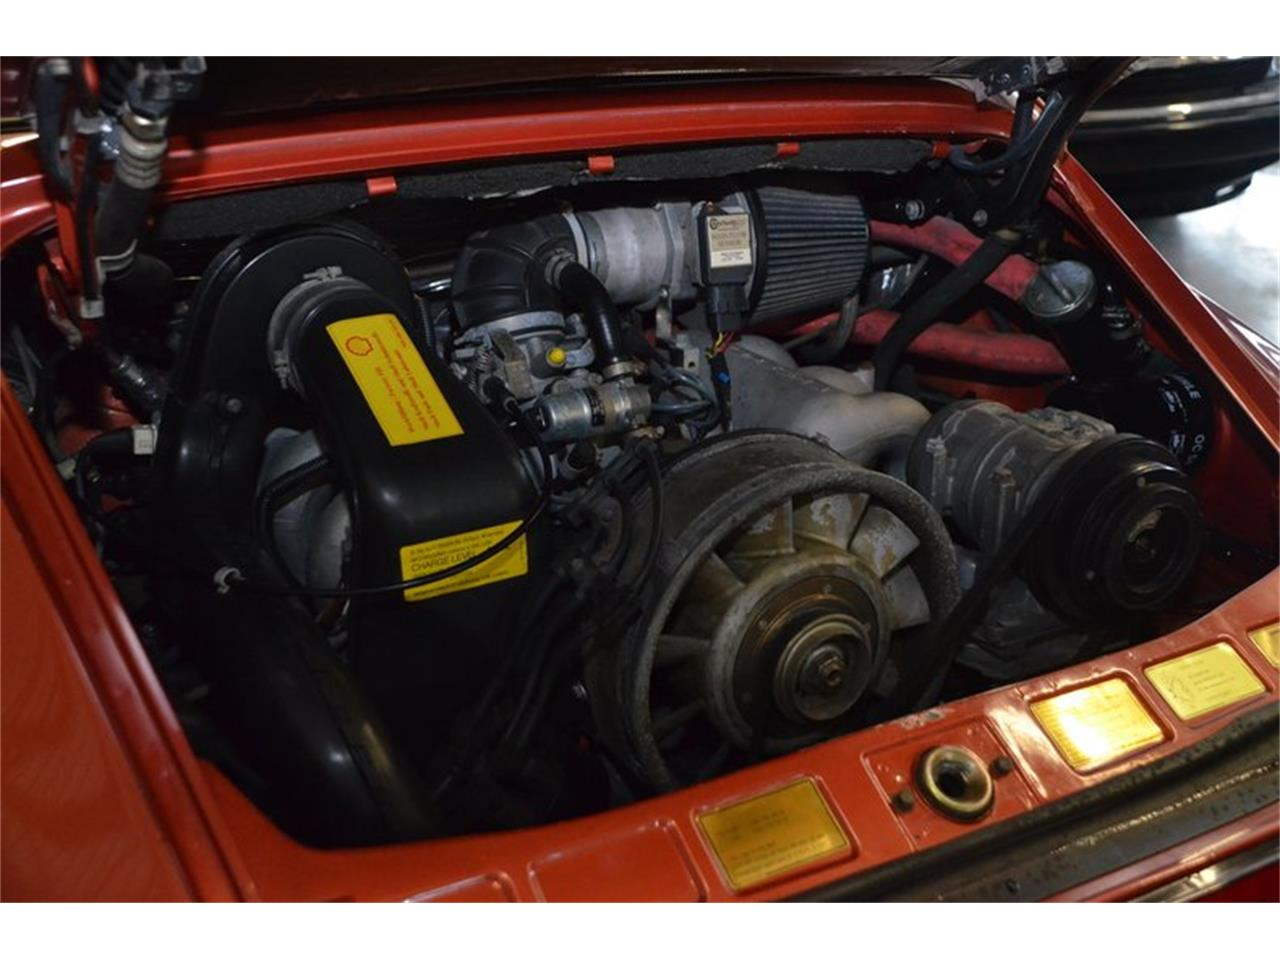 Large Picture of 1984 Porsche 911 located in Lebanon Tennessee - $42,500.00 Offered by Frazier Motor Car Company - PX8U